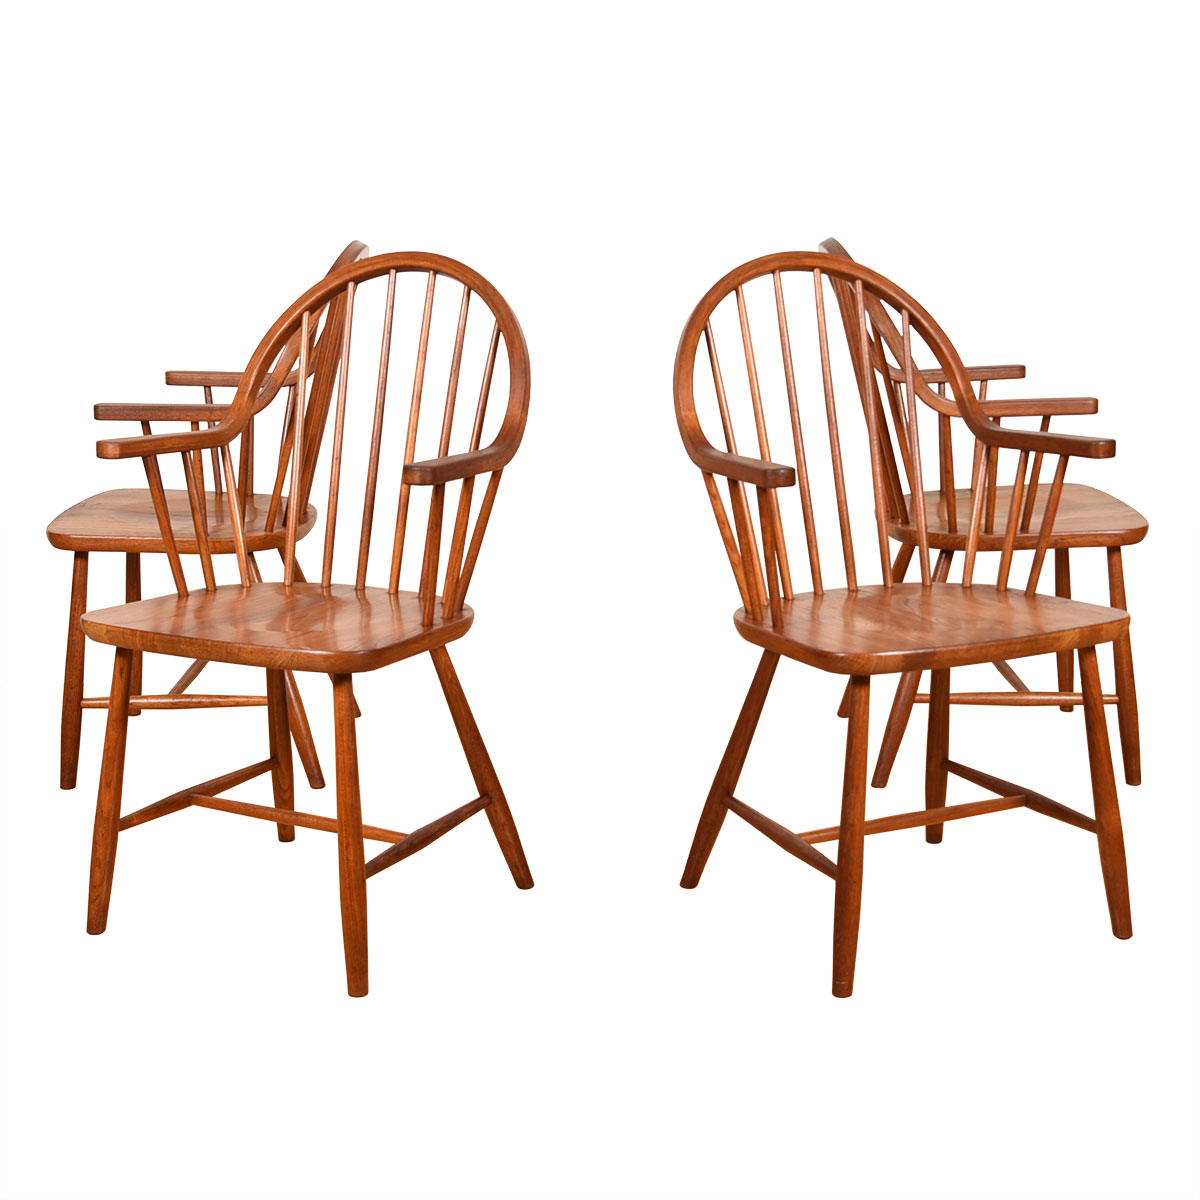 Set of 4 Danish Teak Vintage Spindle Back Dining Arm Chairs